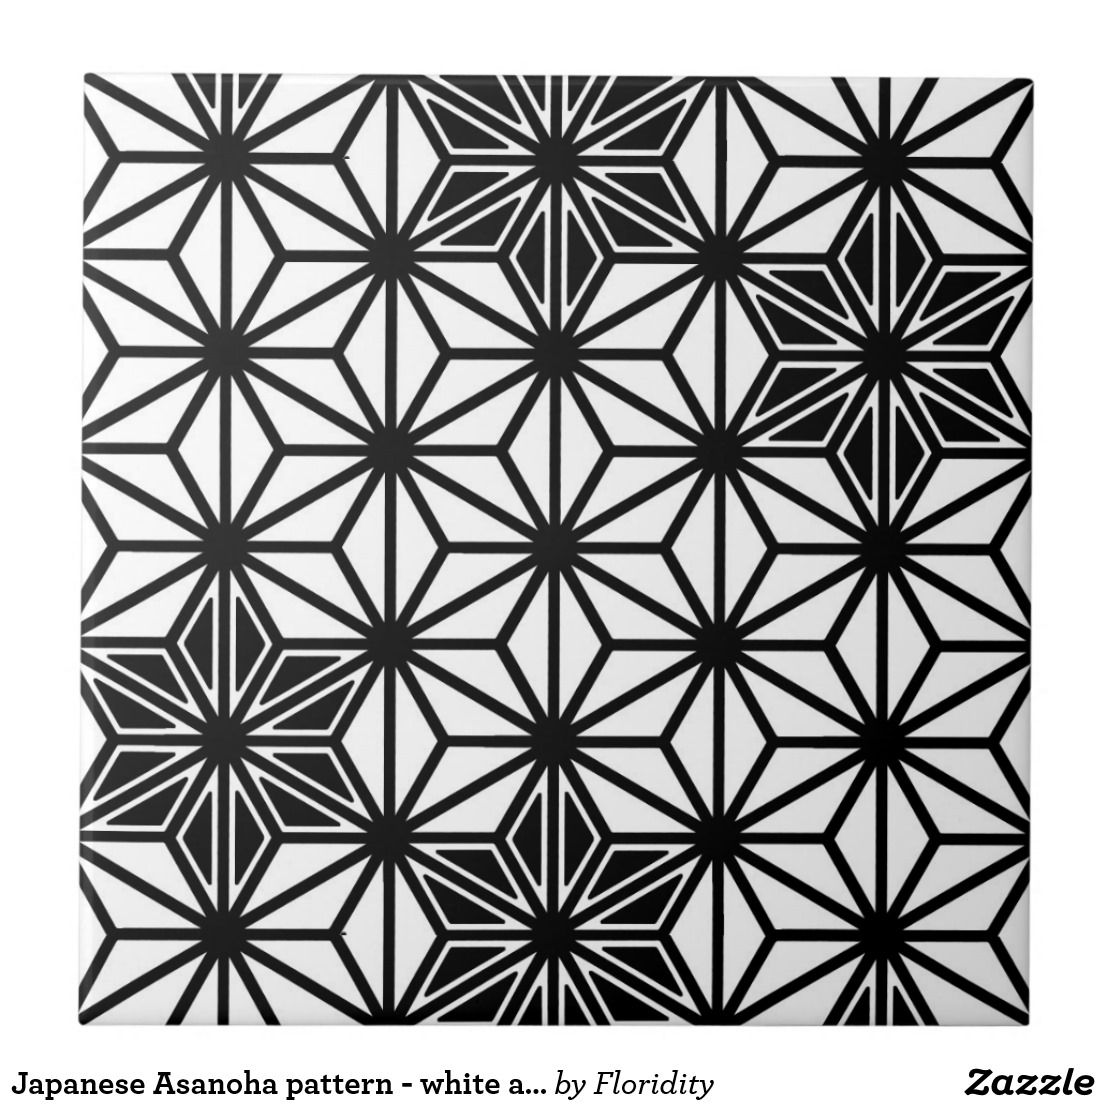 Japanese Asanoha Or Star Pattern, White And Black Tile